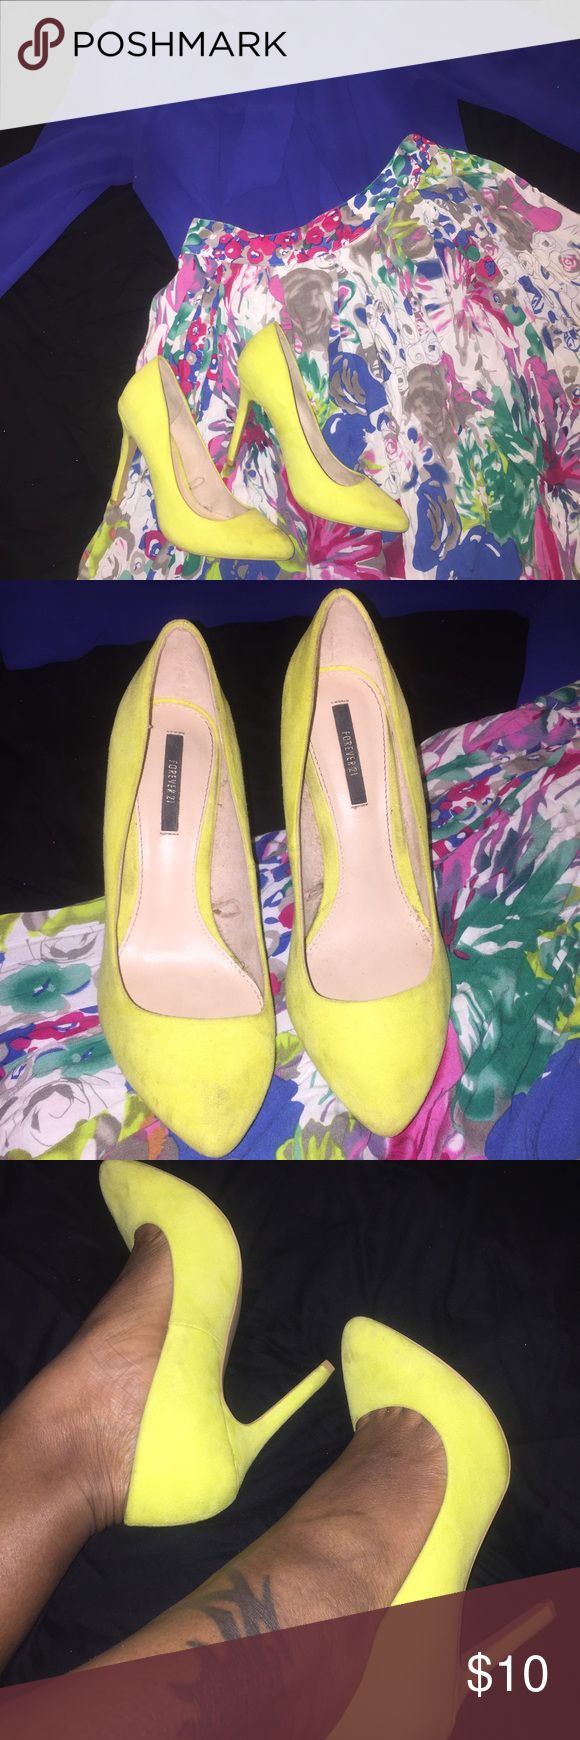 Forever 21 Neon Yellow Pumps Size 6.5 Springtime is here! Step out in these beautiful neon yellow pumps. Perfect for a pop of color with jeans and a white v-neck, or even to pair with a colorful skirt. Minor marks on toe and side of shoe that was there when I purchased them (but they were the last pair so I had to have them) other than that only sign of wear is on bottom sole and a small black mark on bottom left heel. Only worn 3 times, just collecting dust in my closet. In need of a loving…